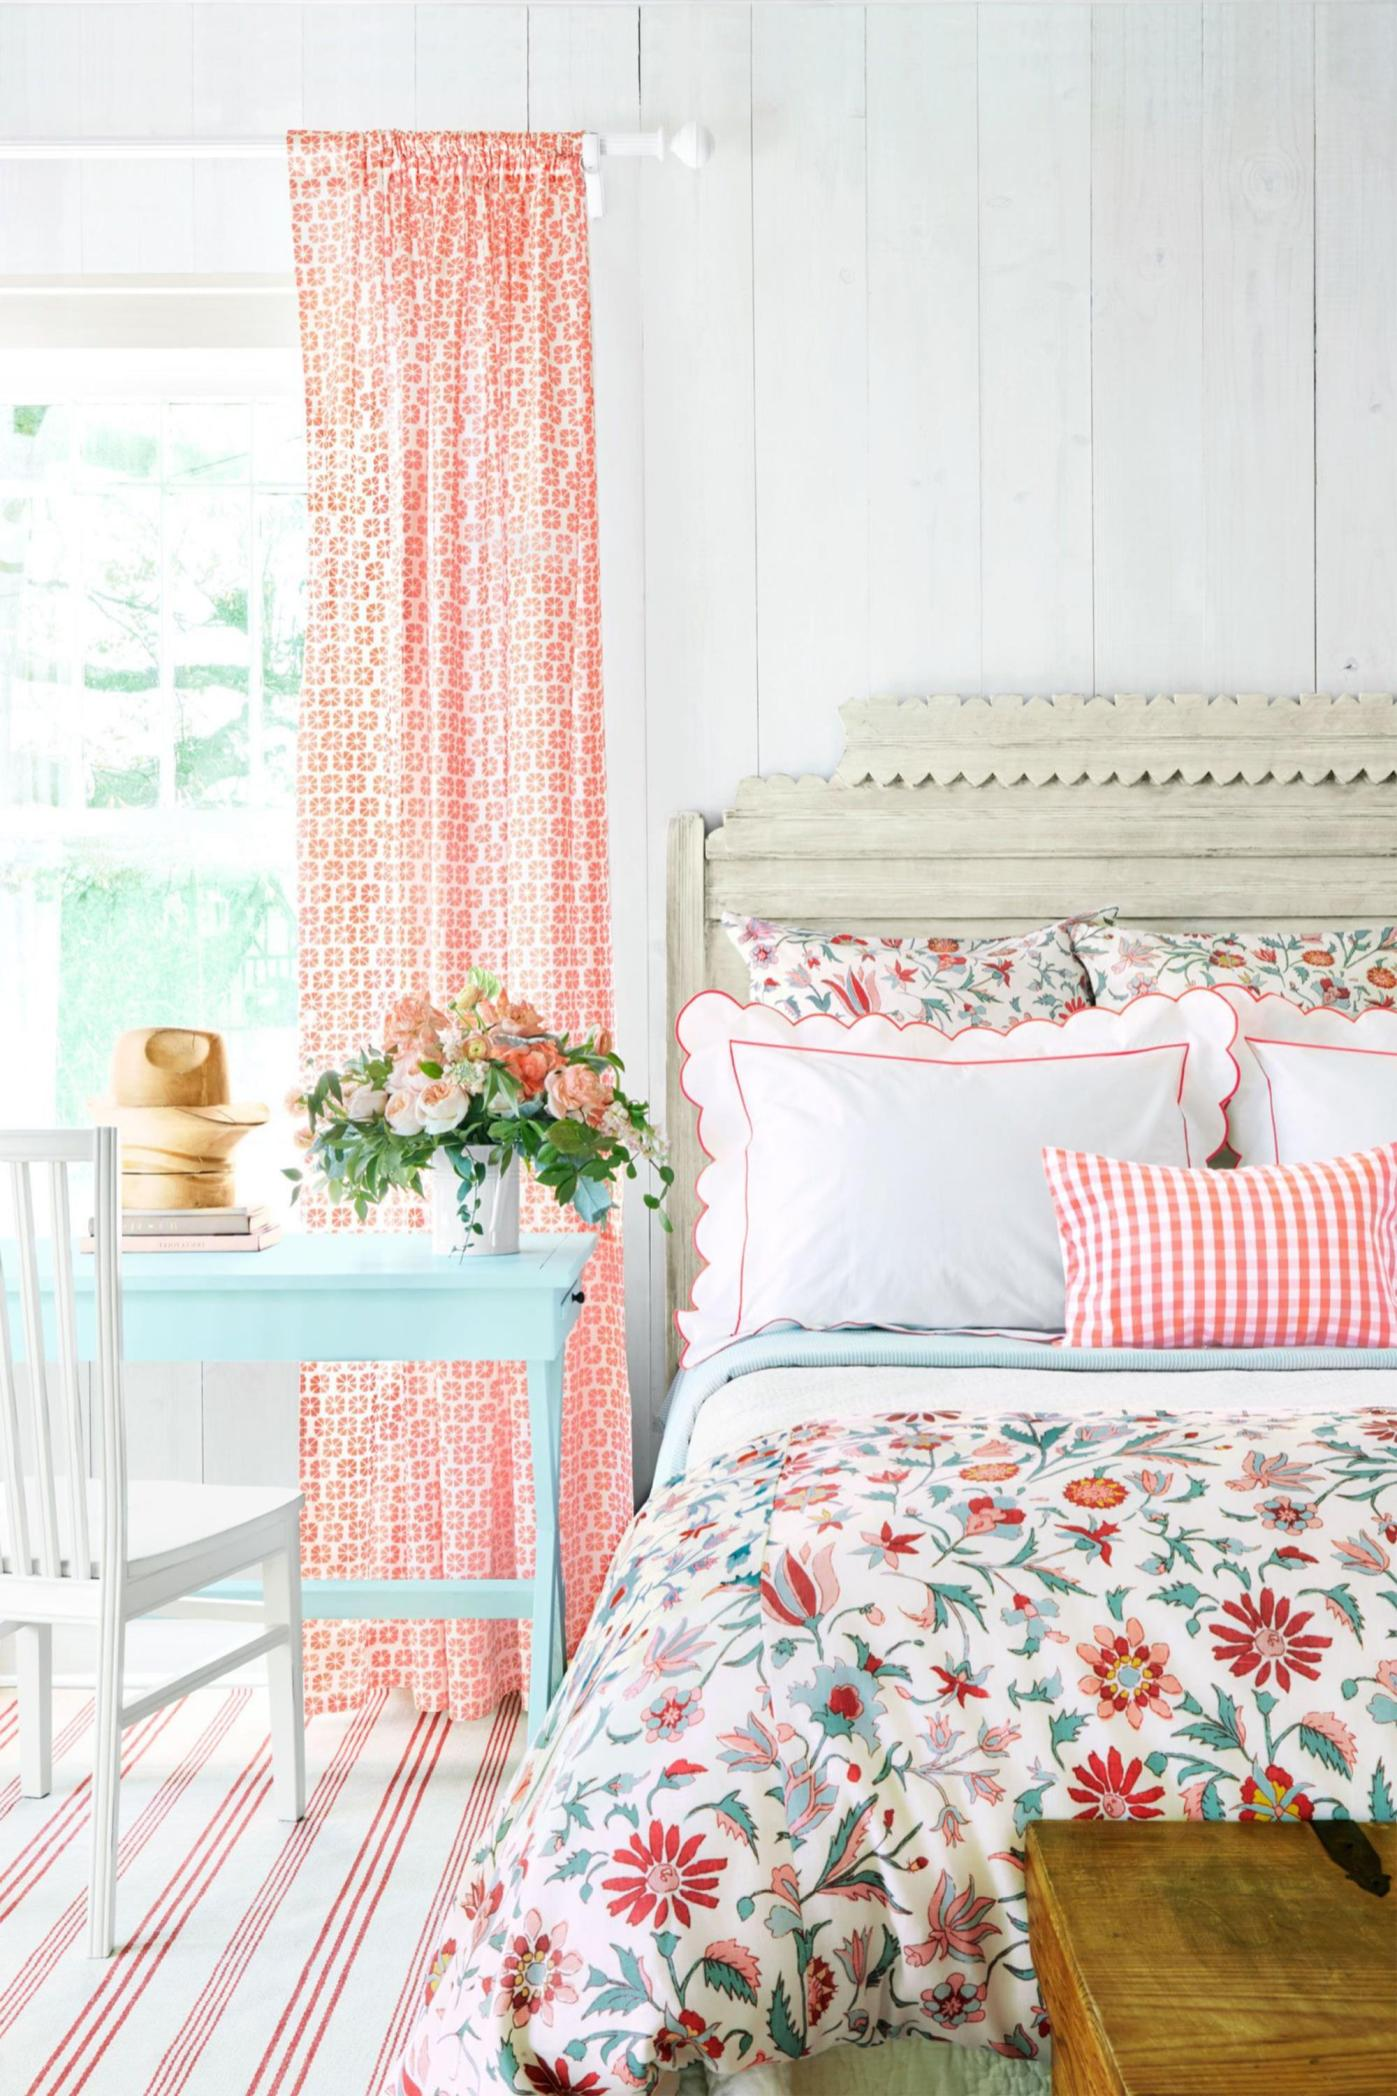 Bedroom Decorating Ideas for Spring 39